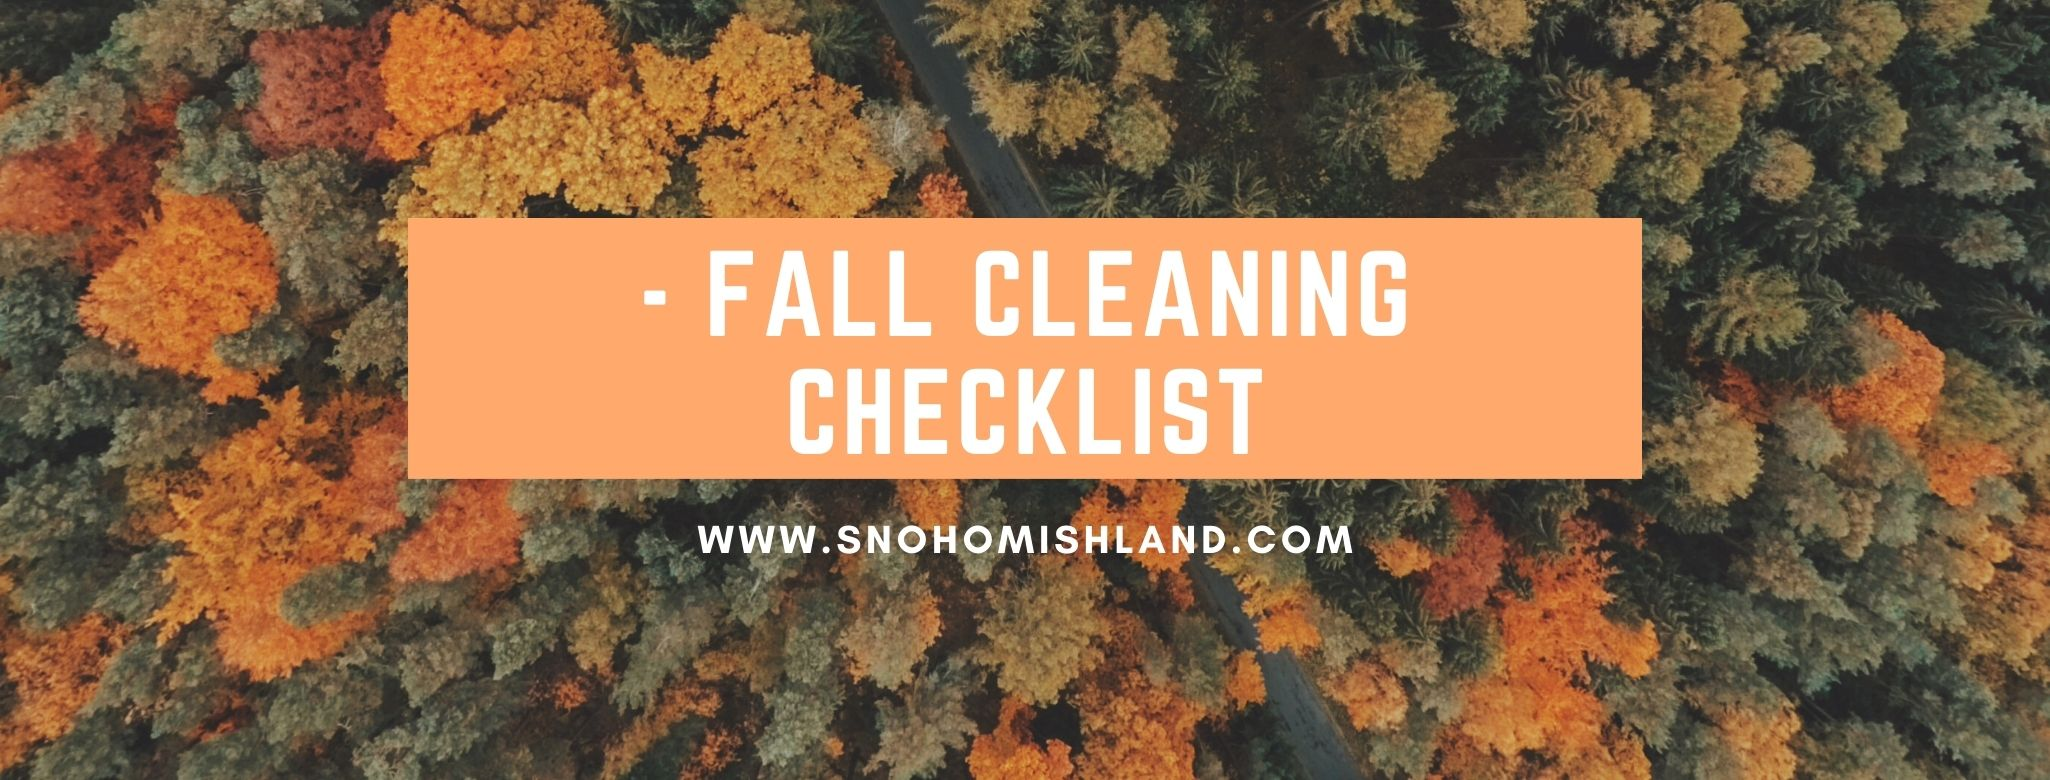 - Fall Cleaning Checklist